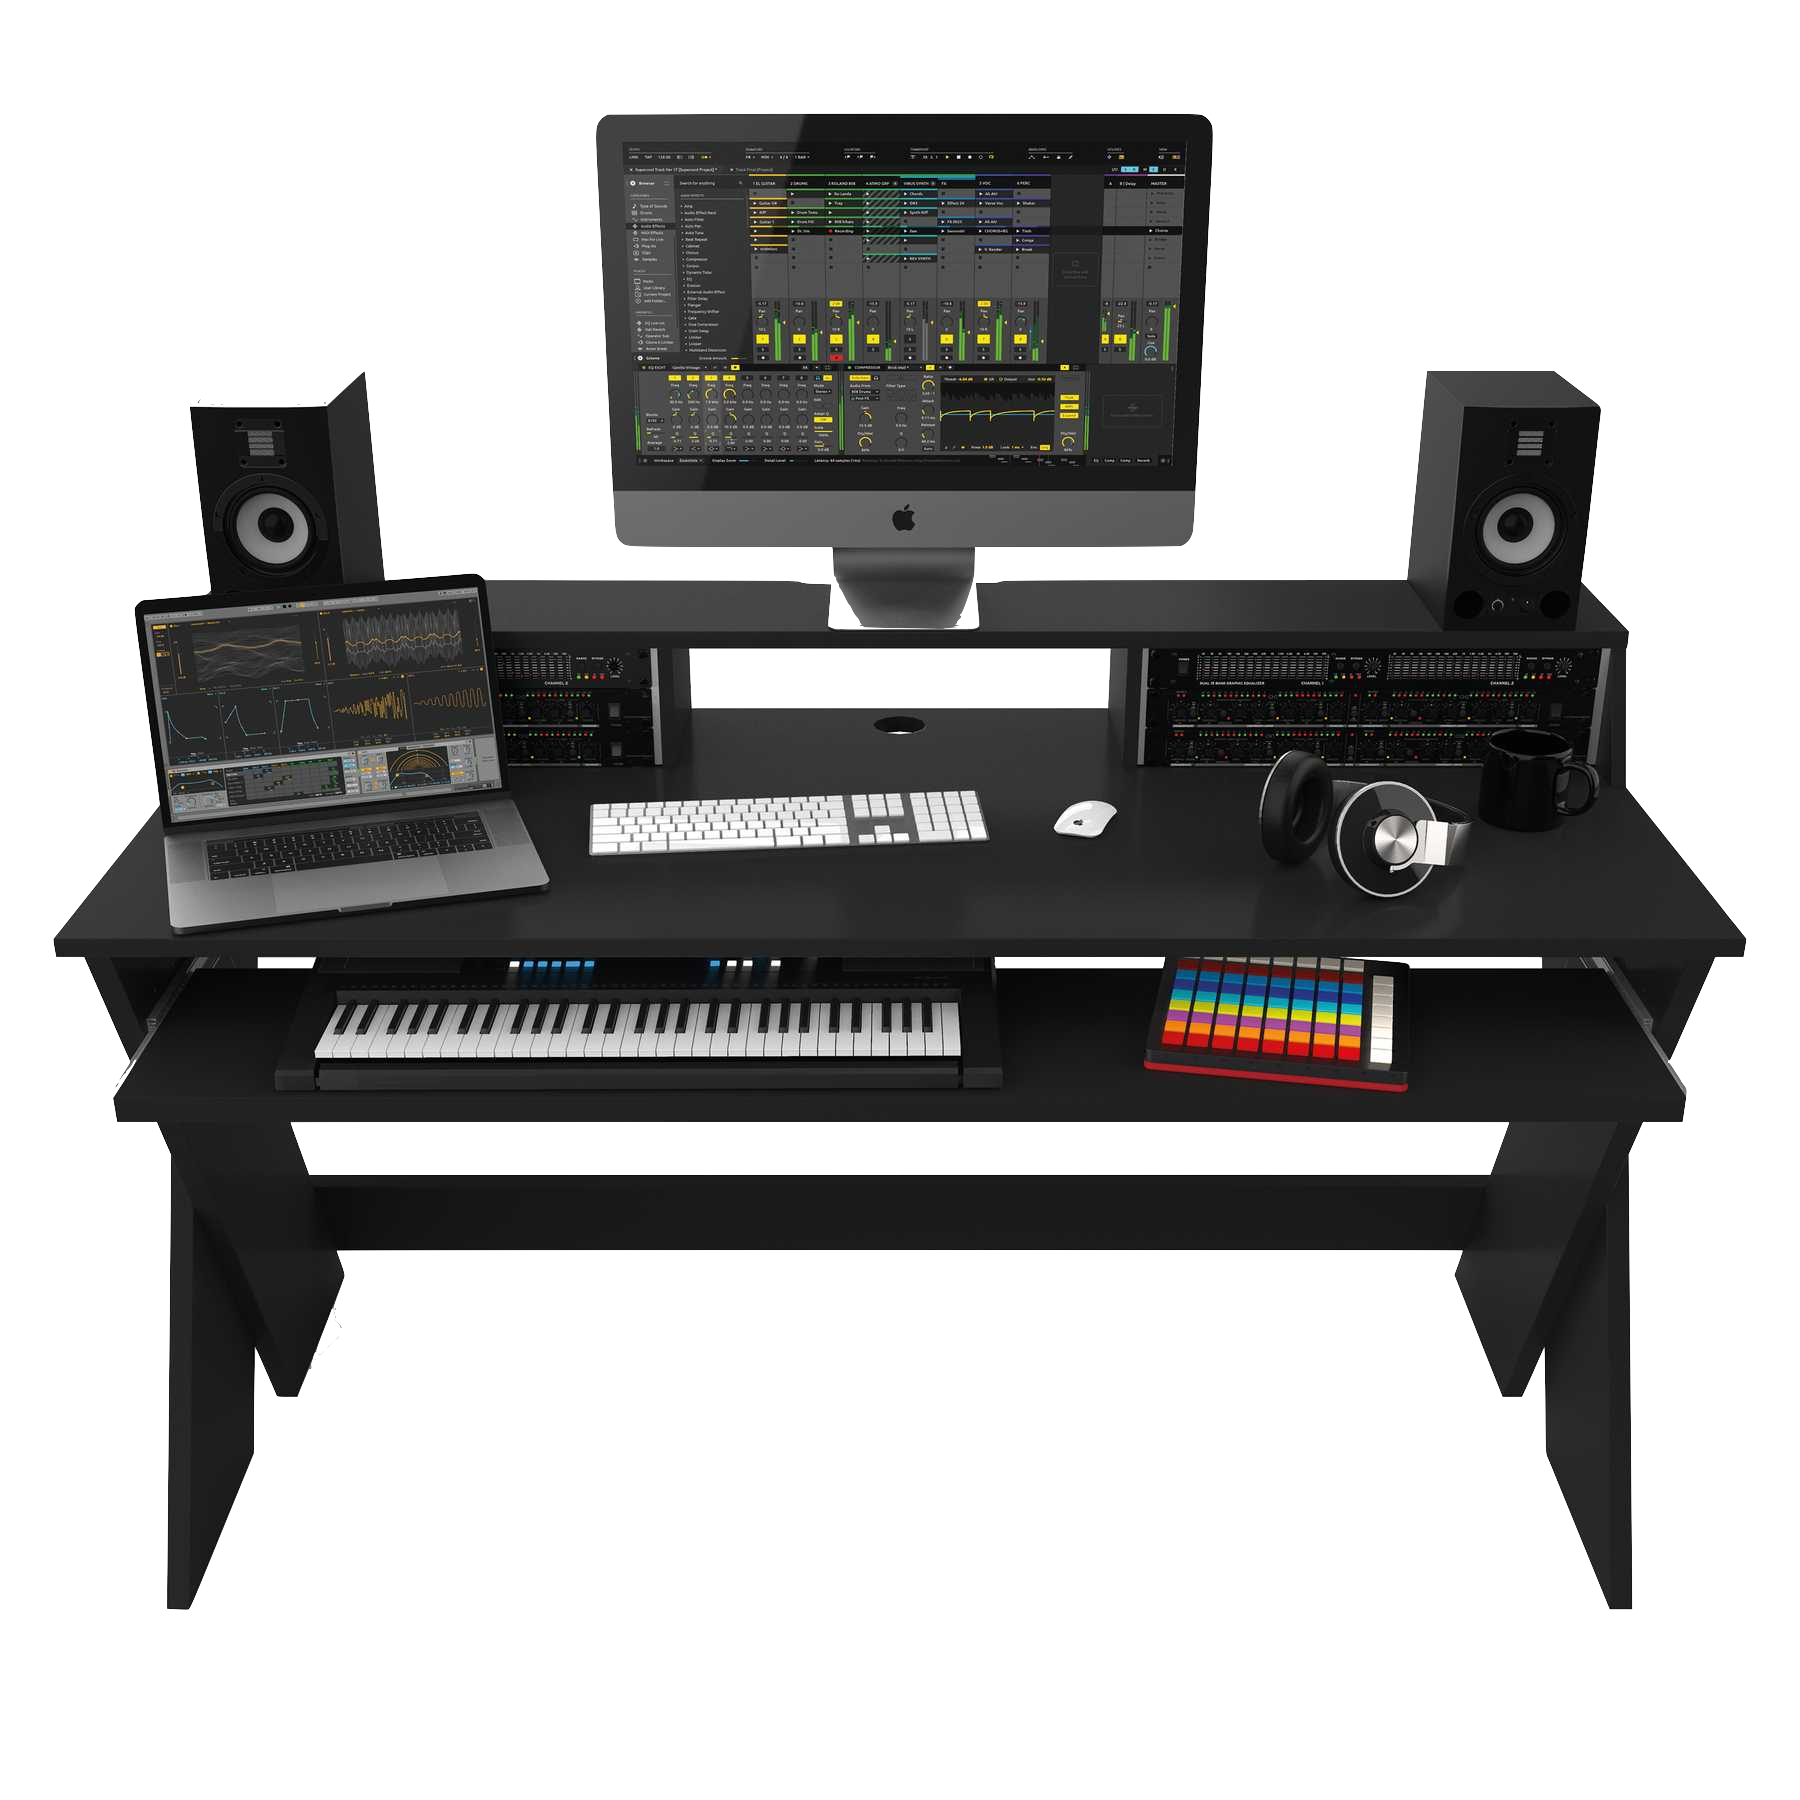 Professional Audio Workstation for home or studio